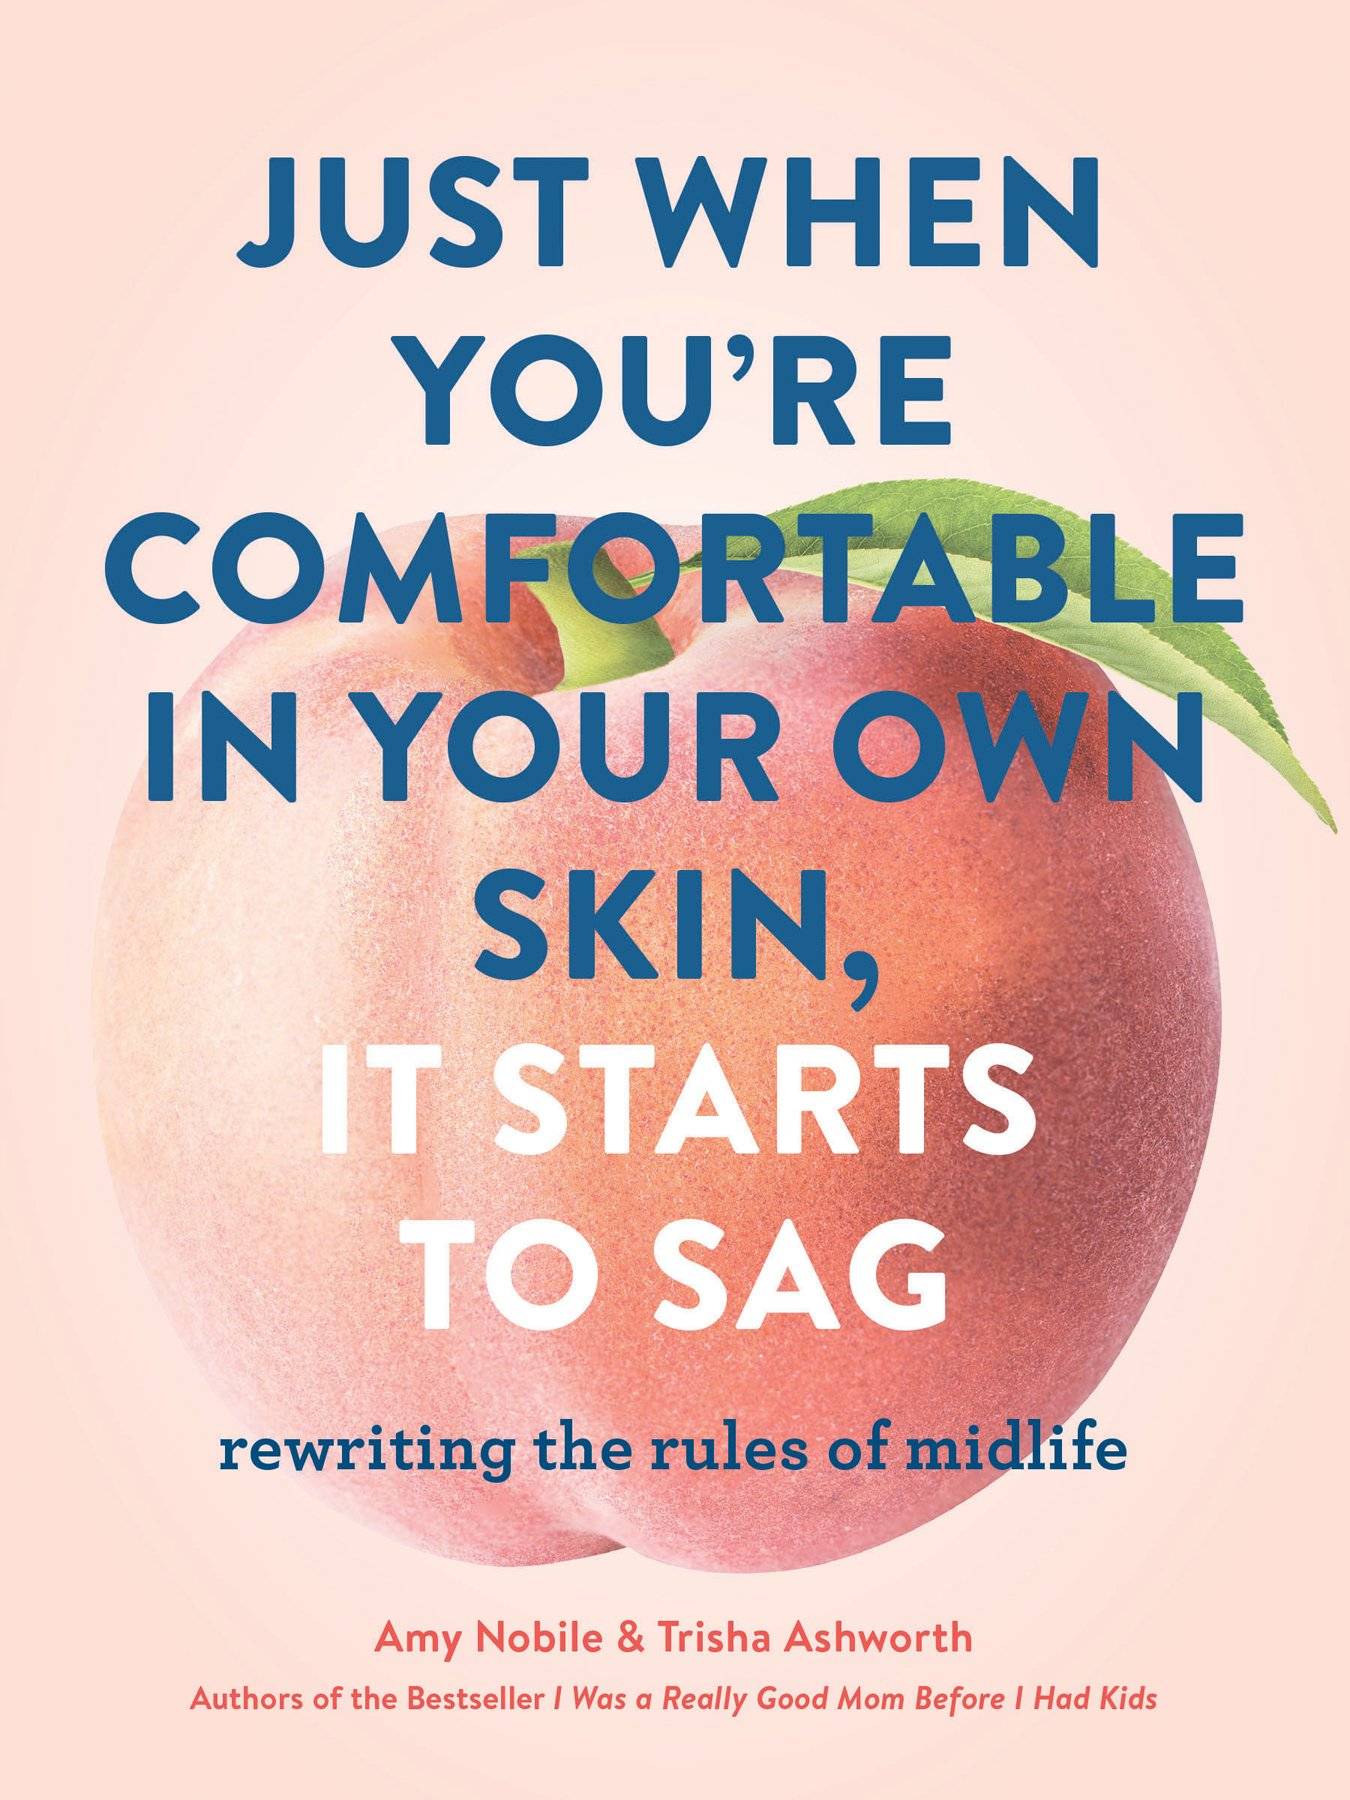 Just When You're Comfortable in Your Own Skin, It Starts to Sag: Rewriting the Rules to Midlife PDF